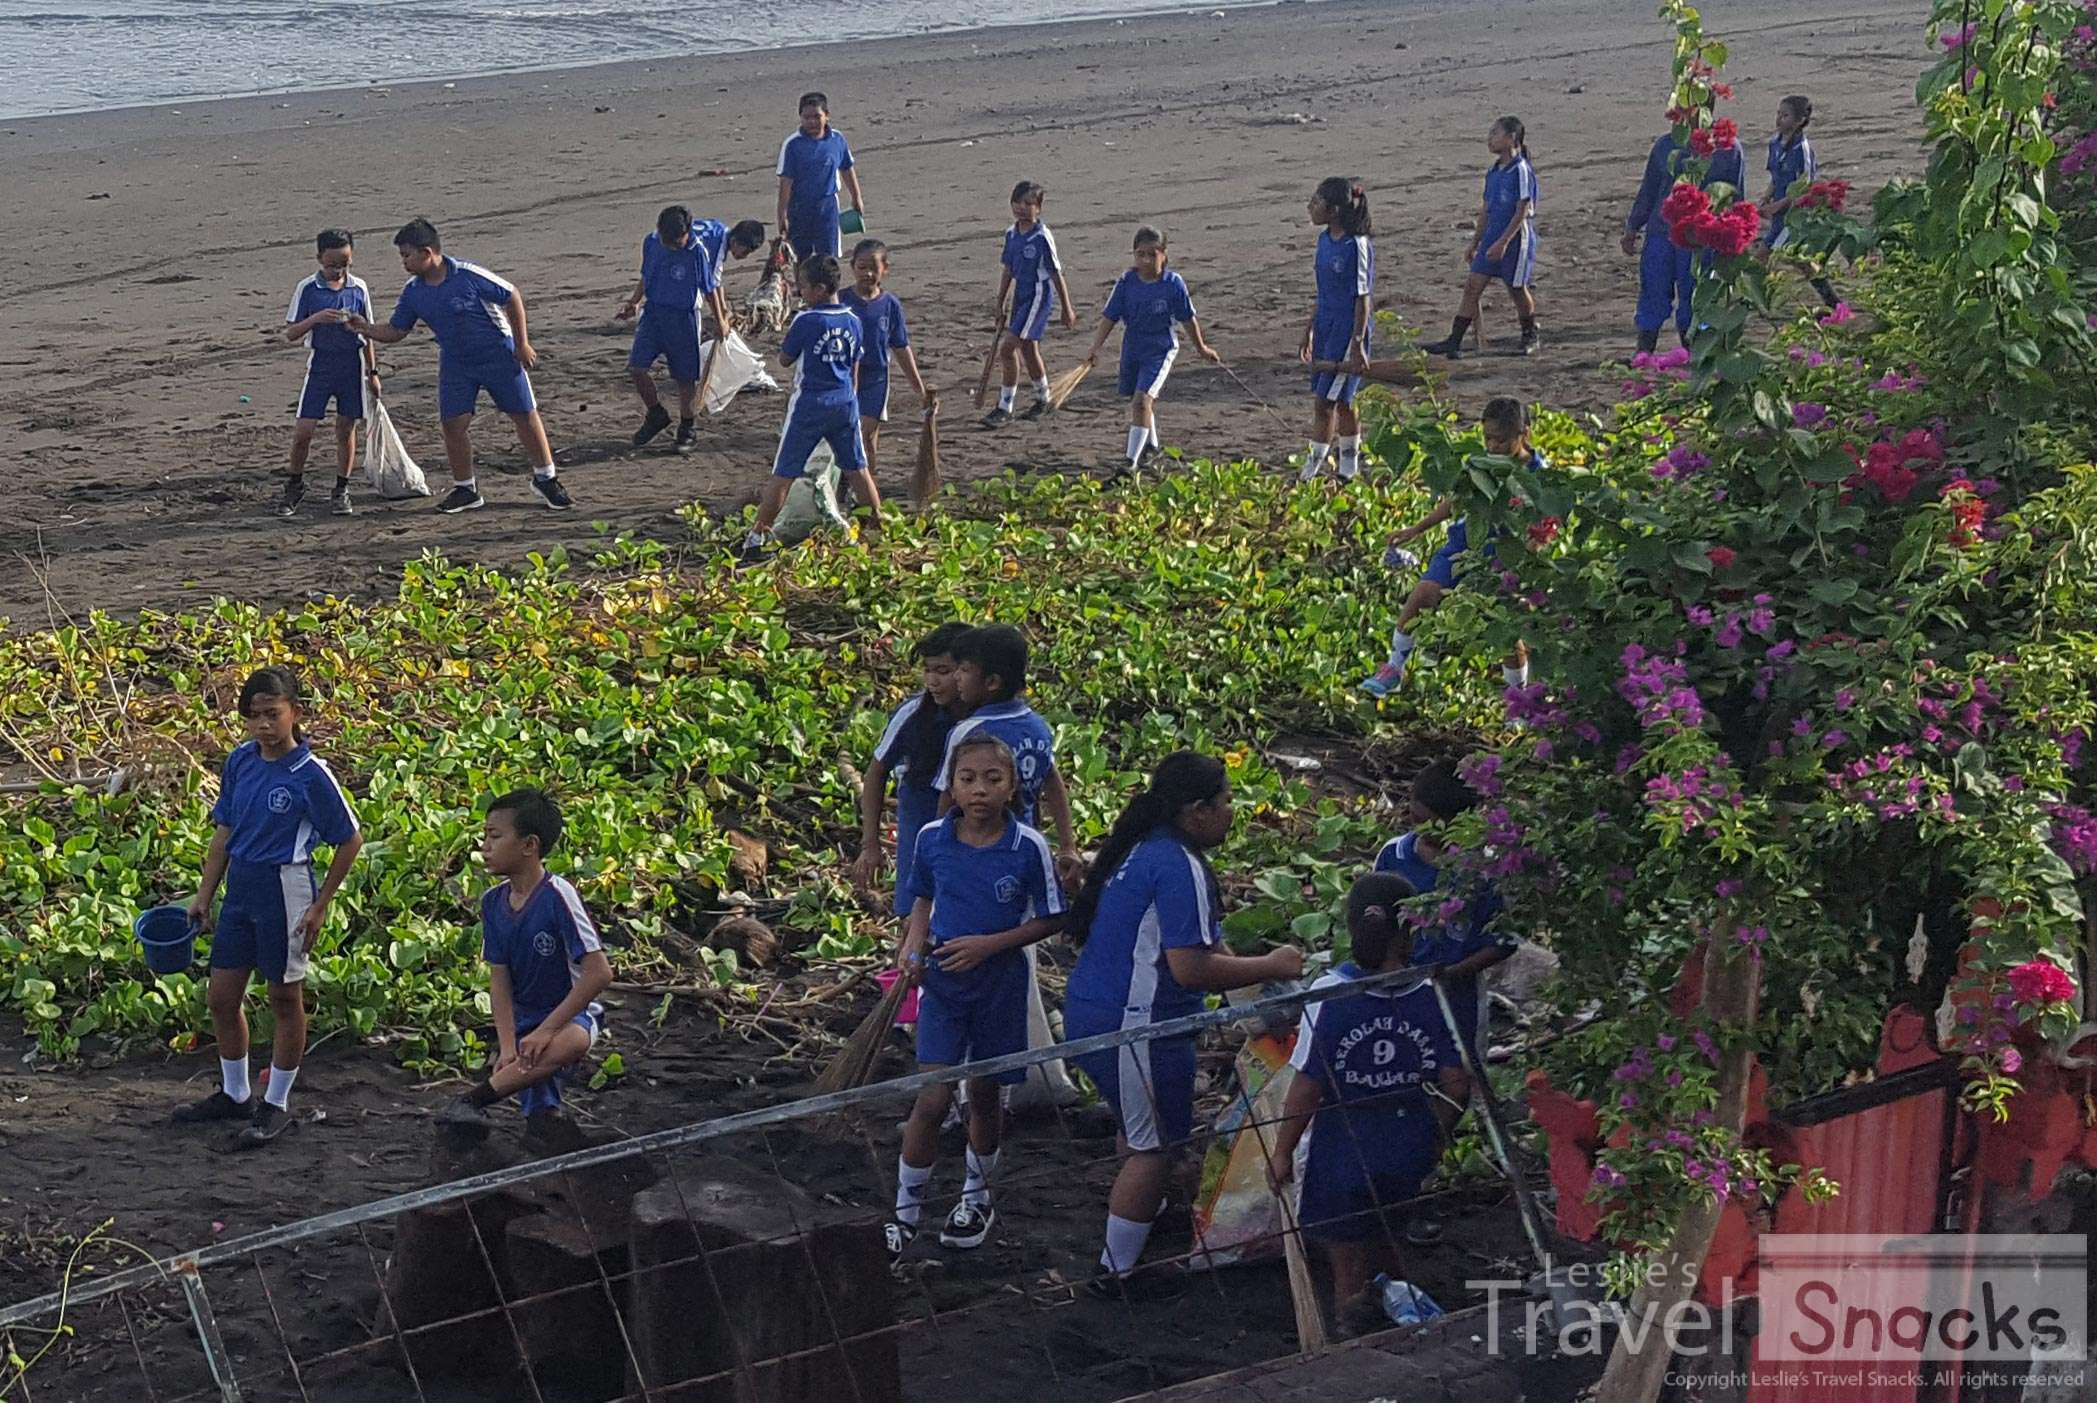 Awesome! School kids out picking up litter ... with their bare hands.